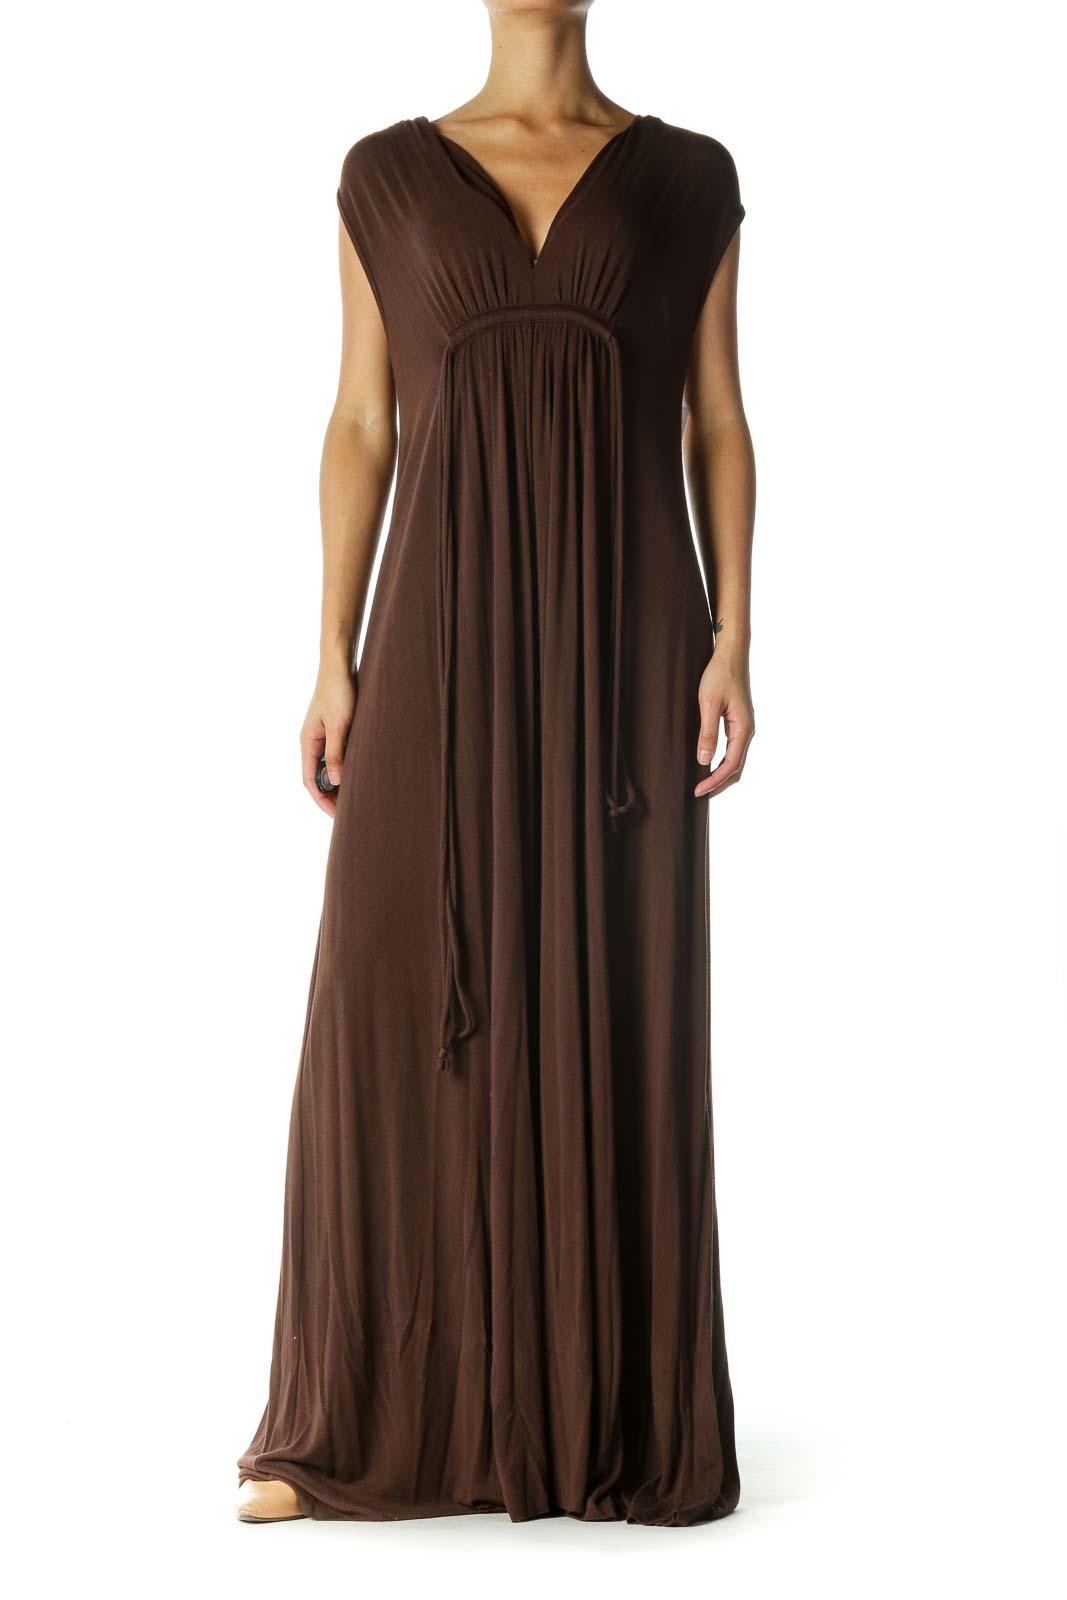 Brown Sleeveless Maxi Dress Front